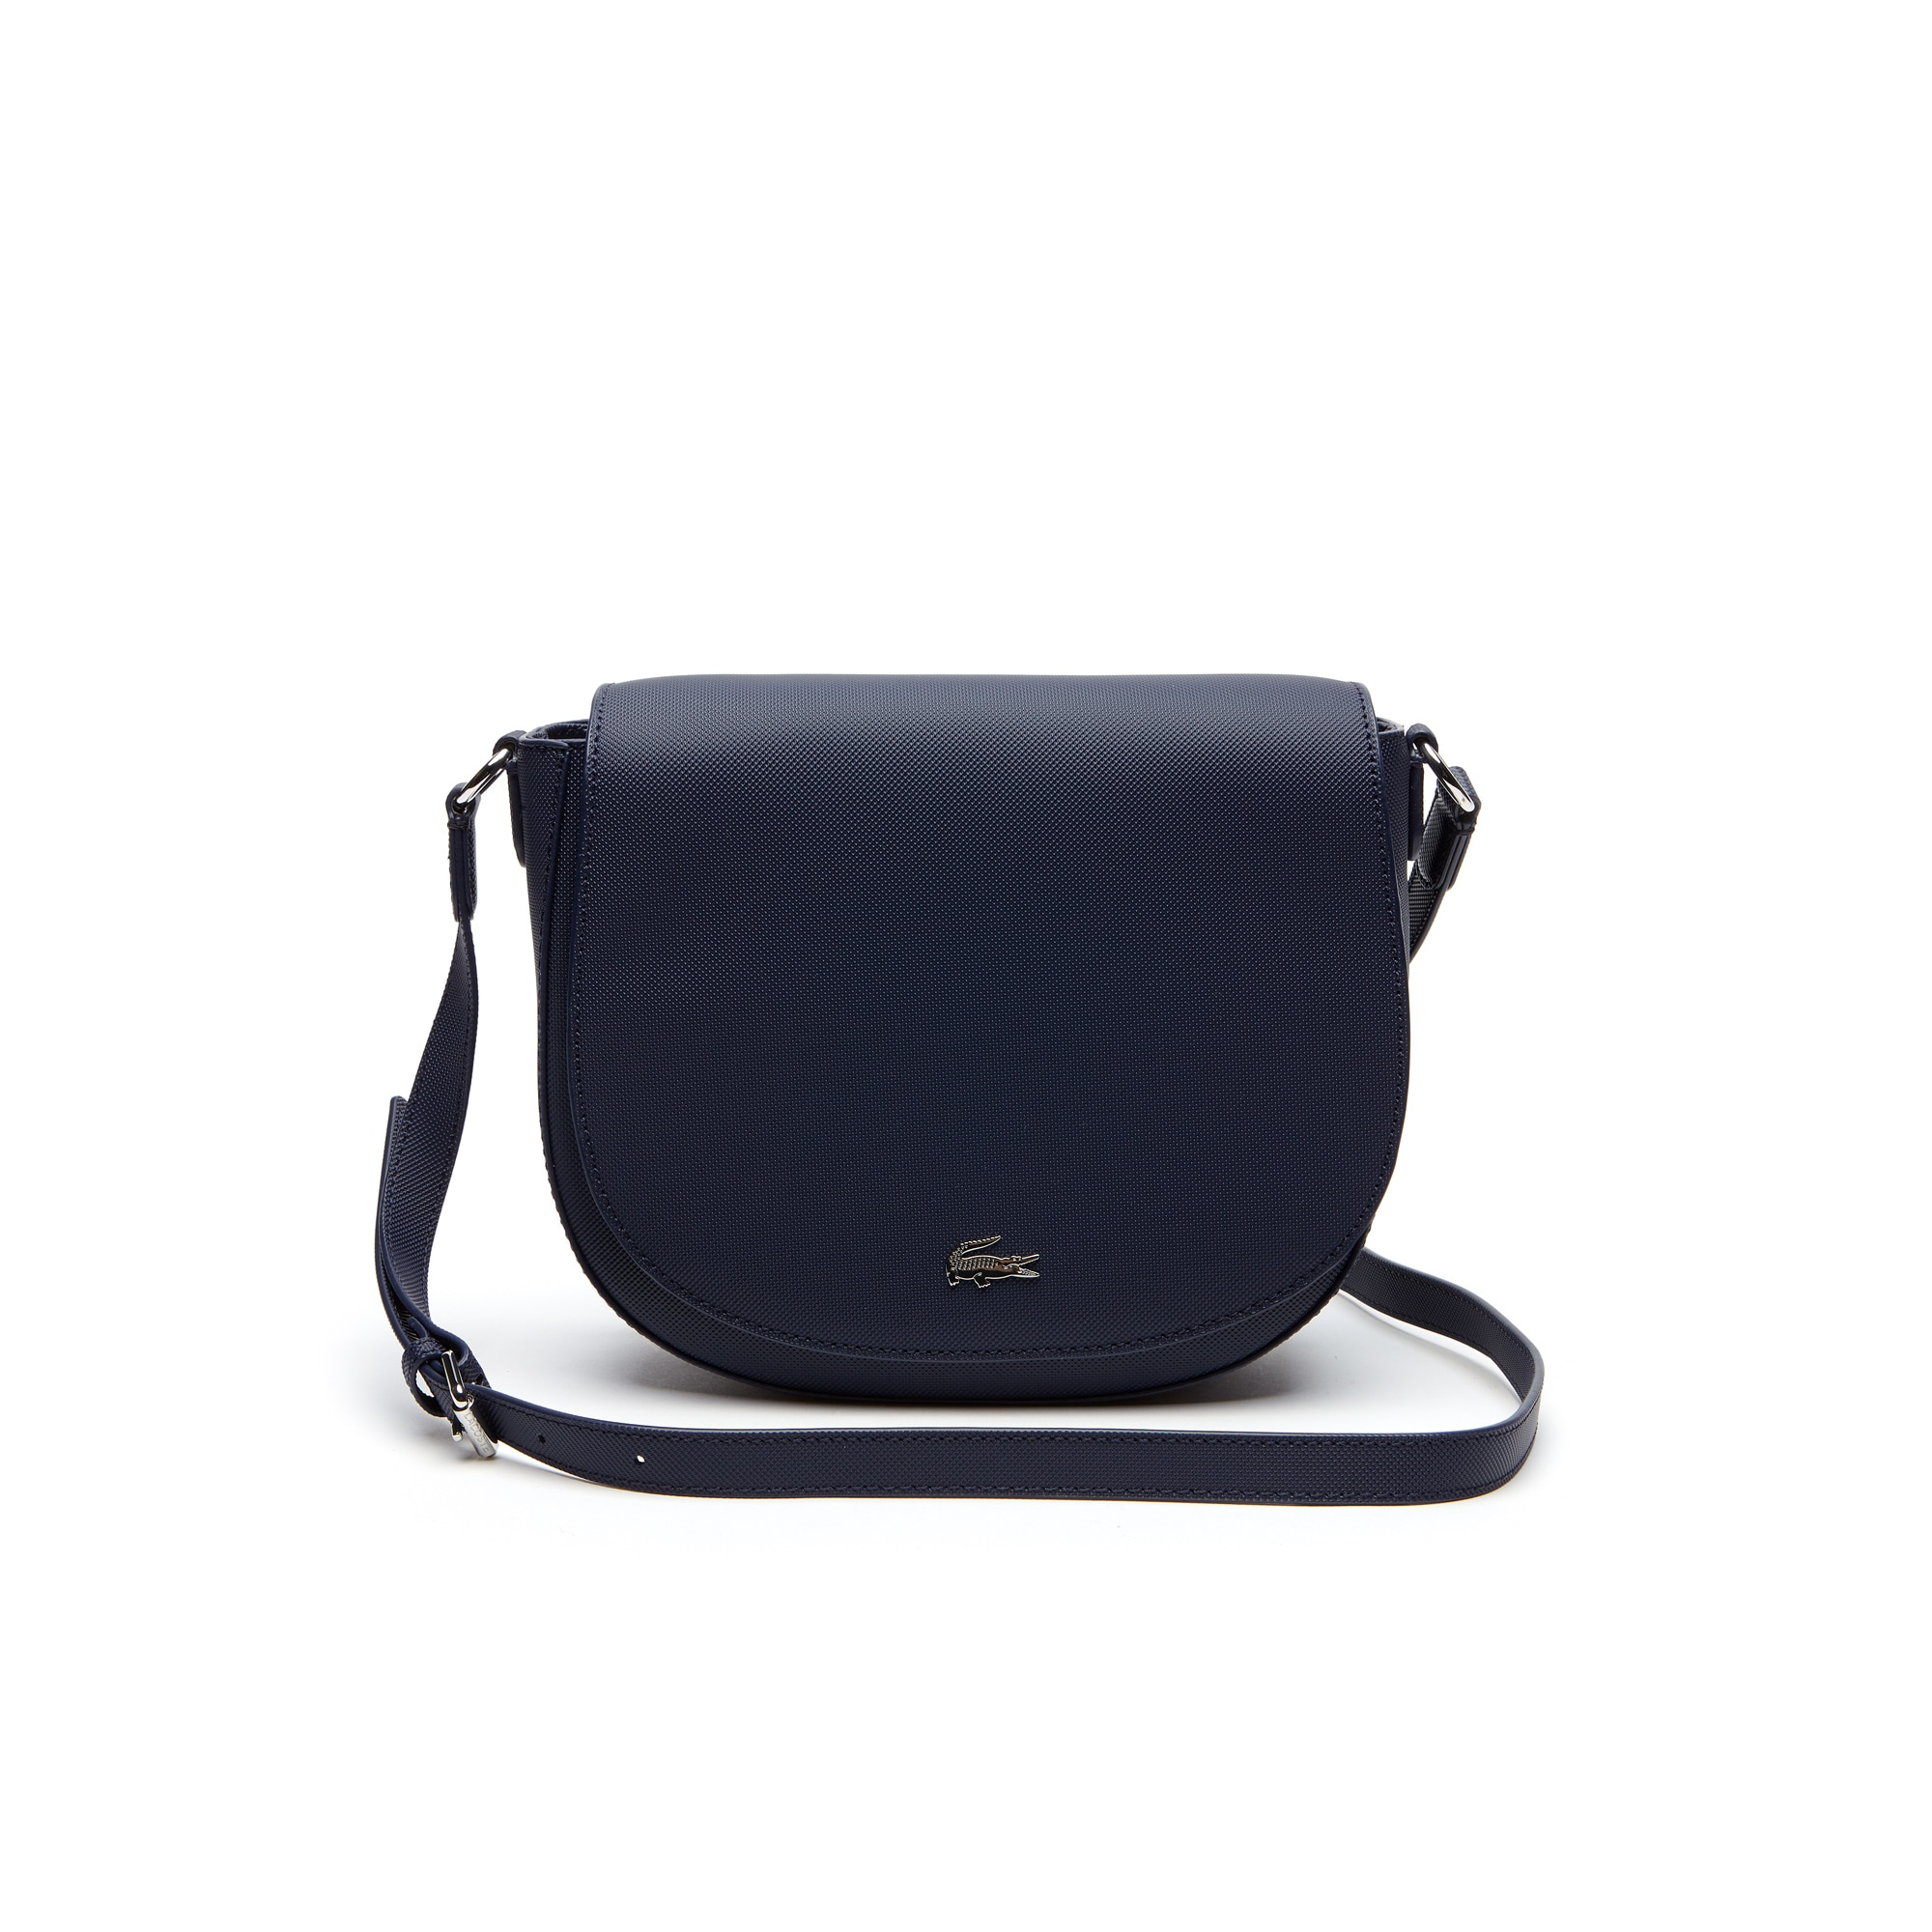 Women's Daily Classic Coated Piqué Canvas Round Crossover Bag